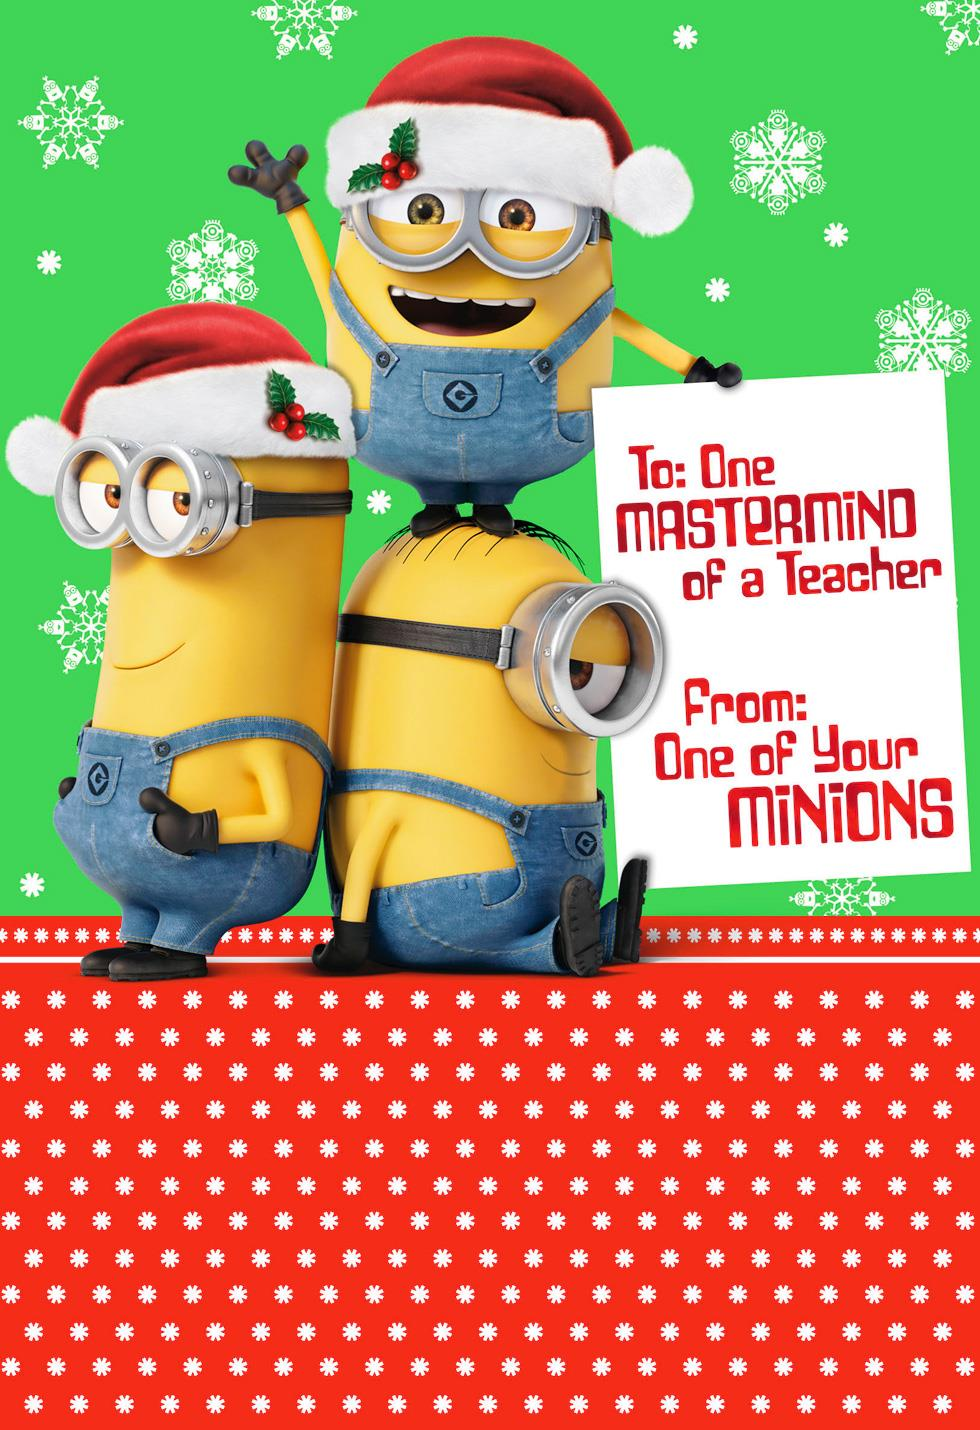 Despicable me minions mastermind christmas card for teacher despicable me minions mastermind christmas card for teacher kristyandbryce Image collections